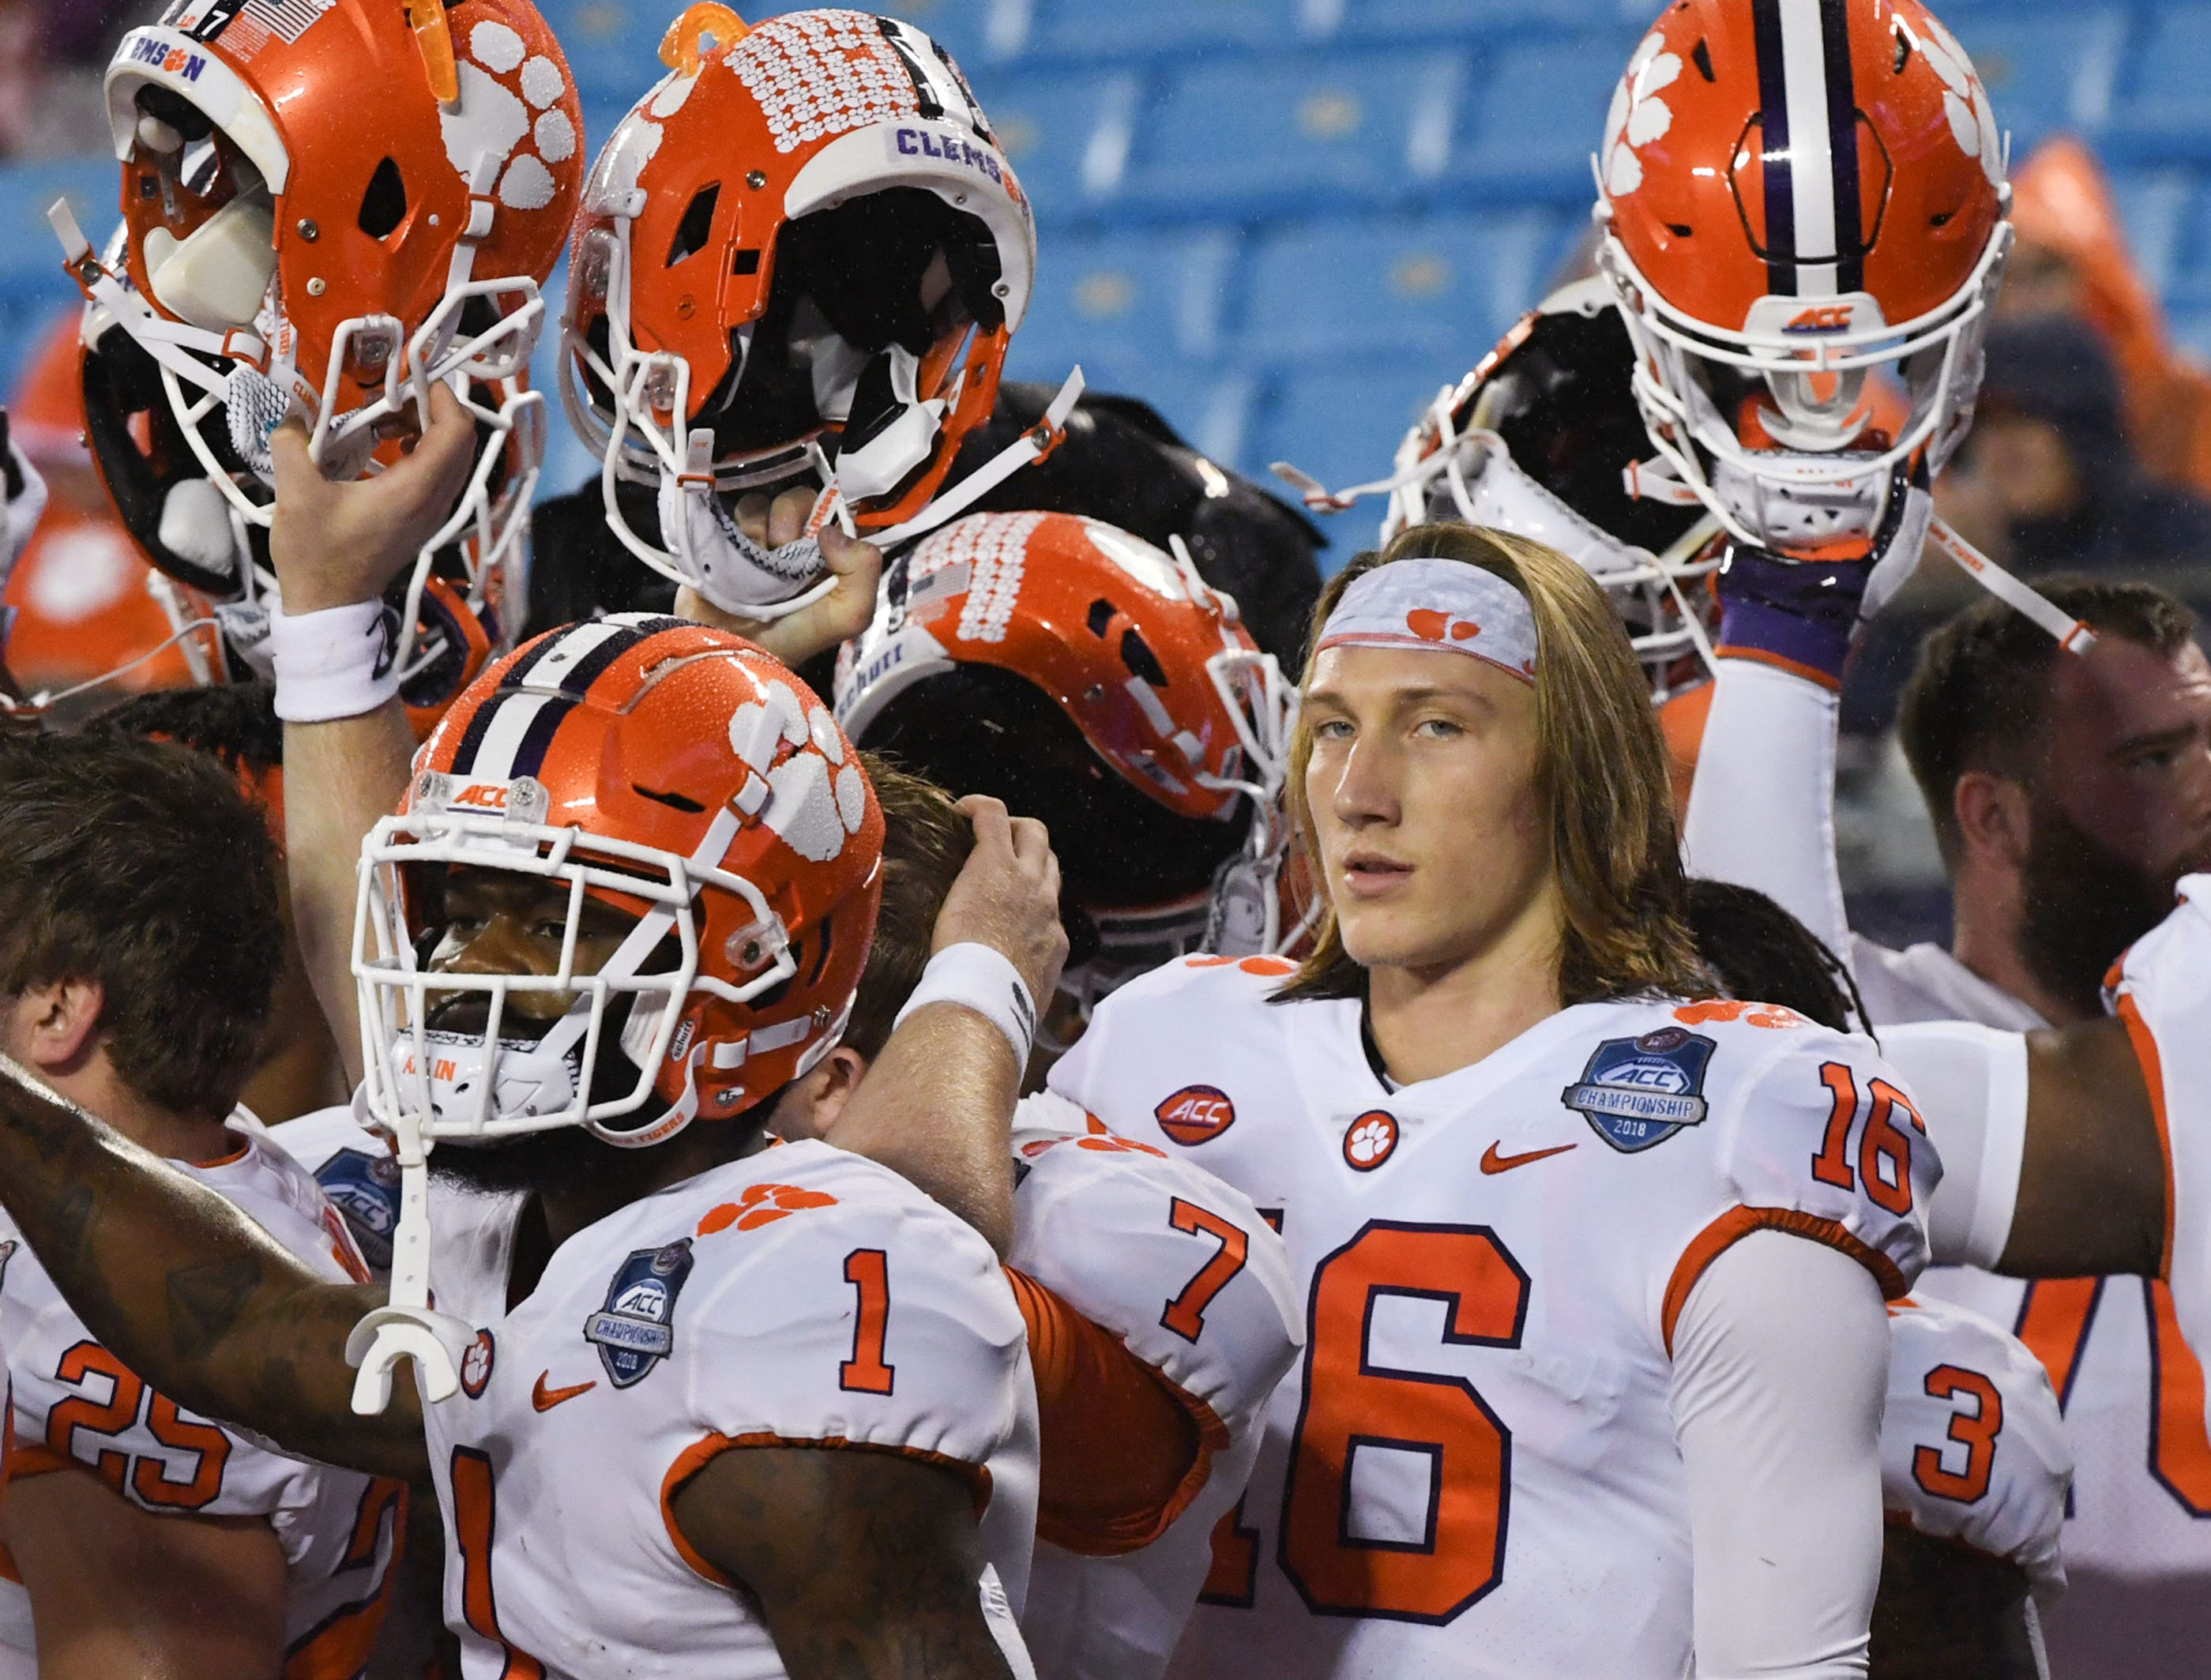 Clemson quarterback Trevor Lawrence (16) and teammates raise their helmets before the game of the Dr. Pepper ACC football championship at Bank of America Stadium in Charlotte, N.C. on Saturday, December 1, 2018.